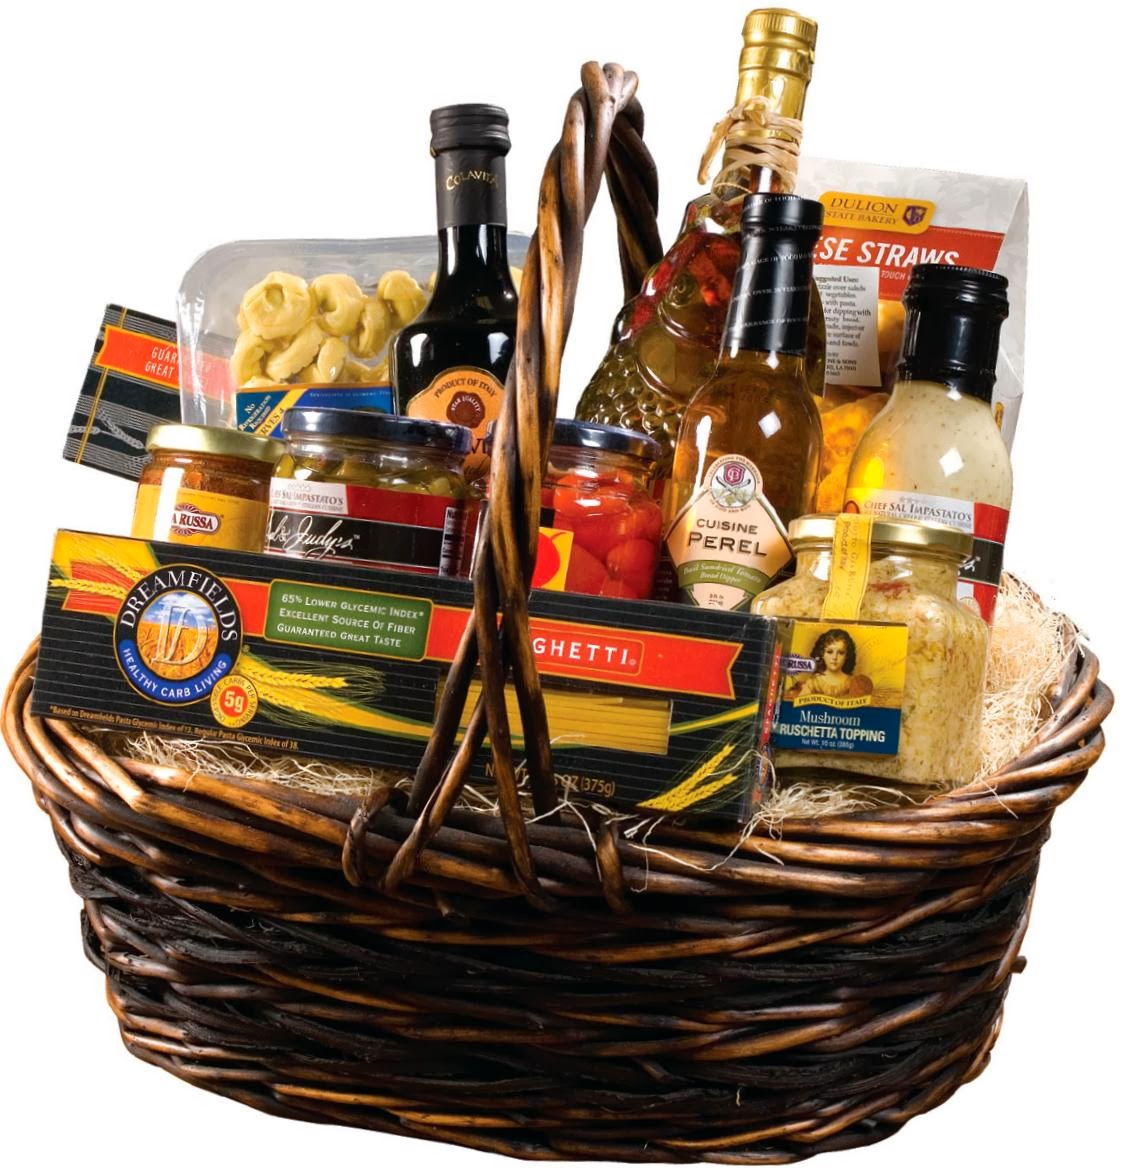 New London MC: Gift Baskets Please